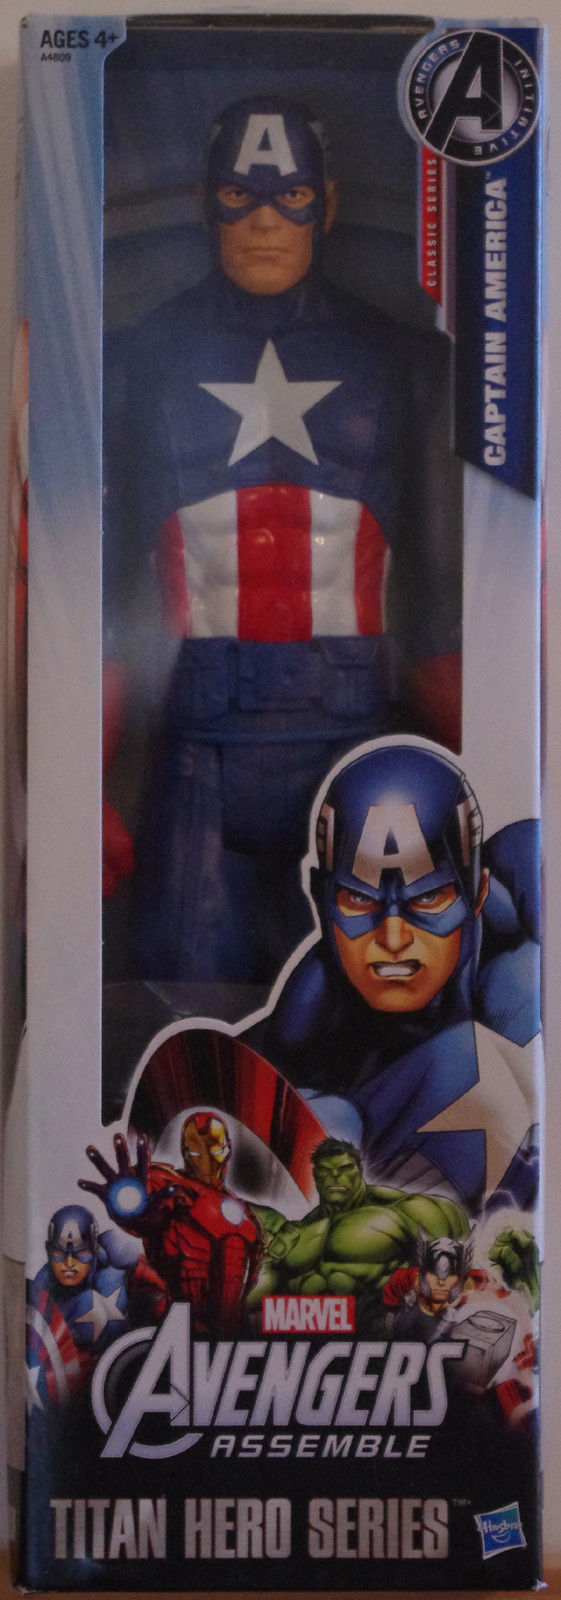 CAPTAIN AMERICA Action Figure, Titan Hero Series, 2012, Marvel, more AF in store